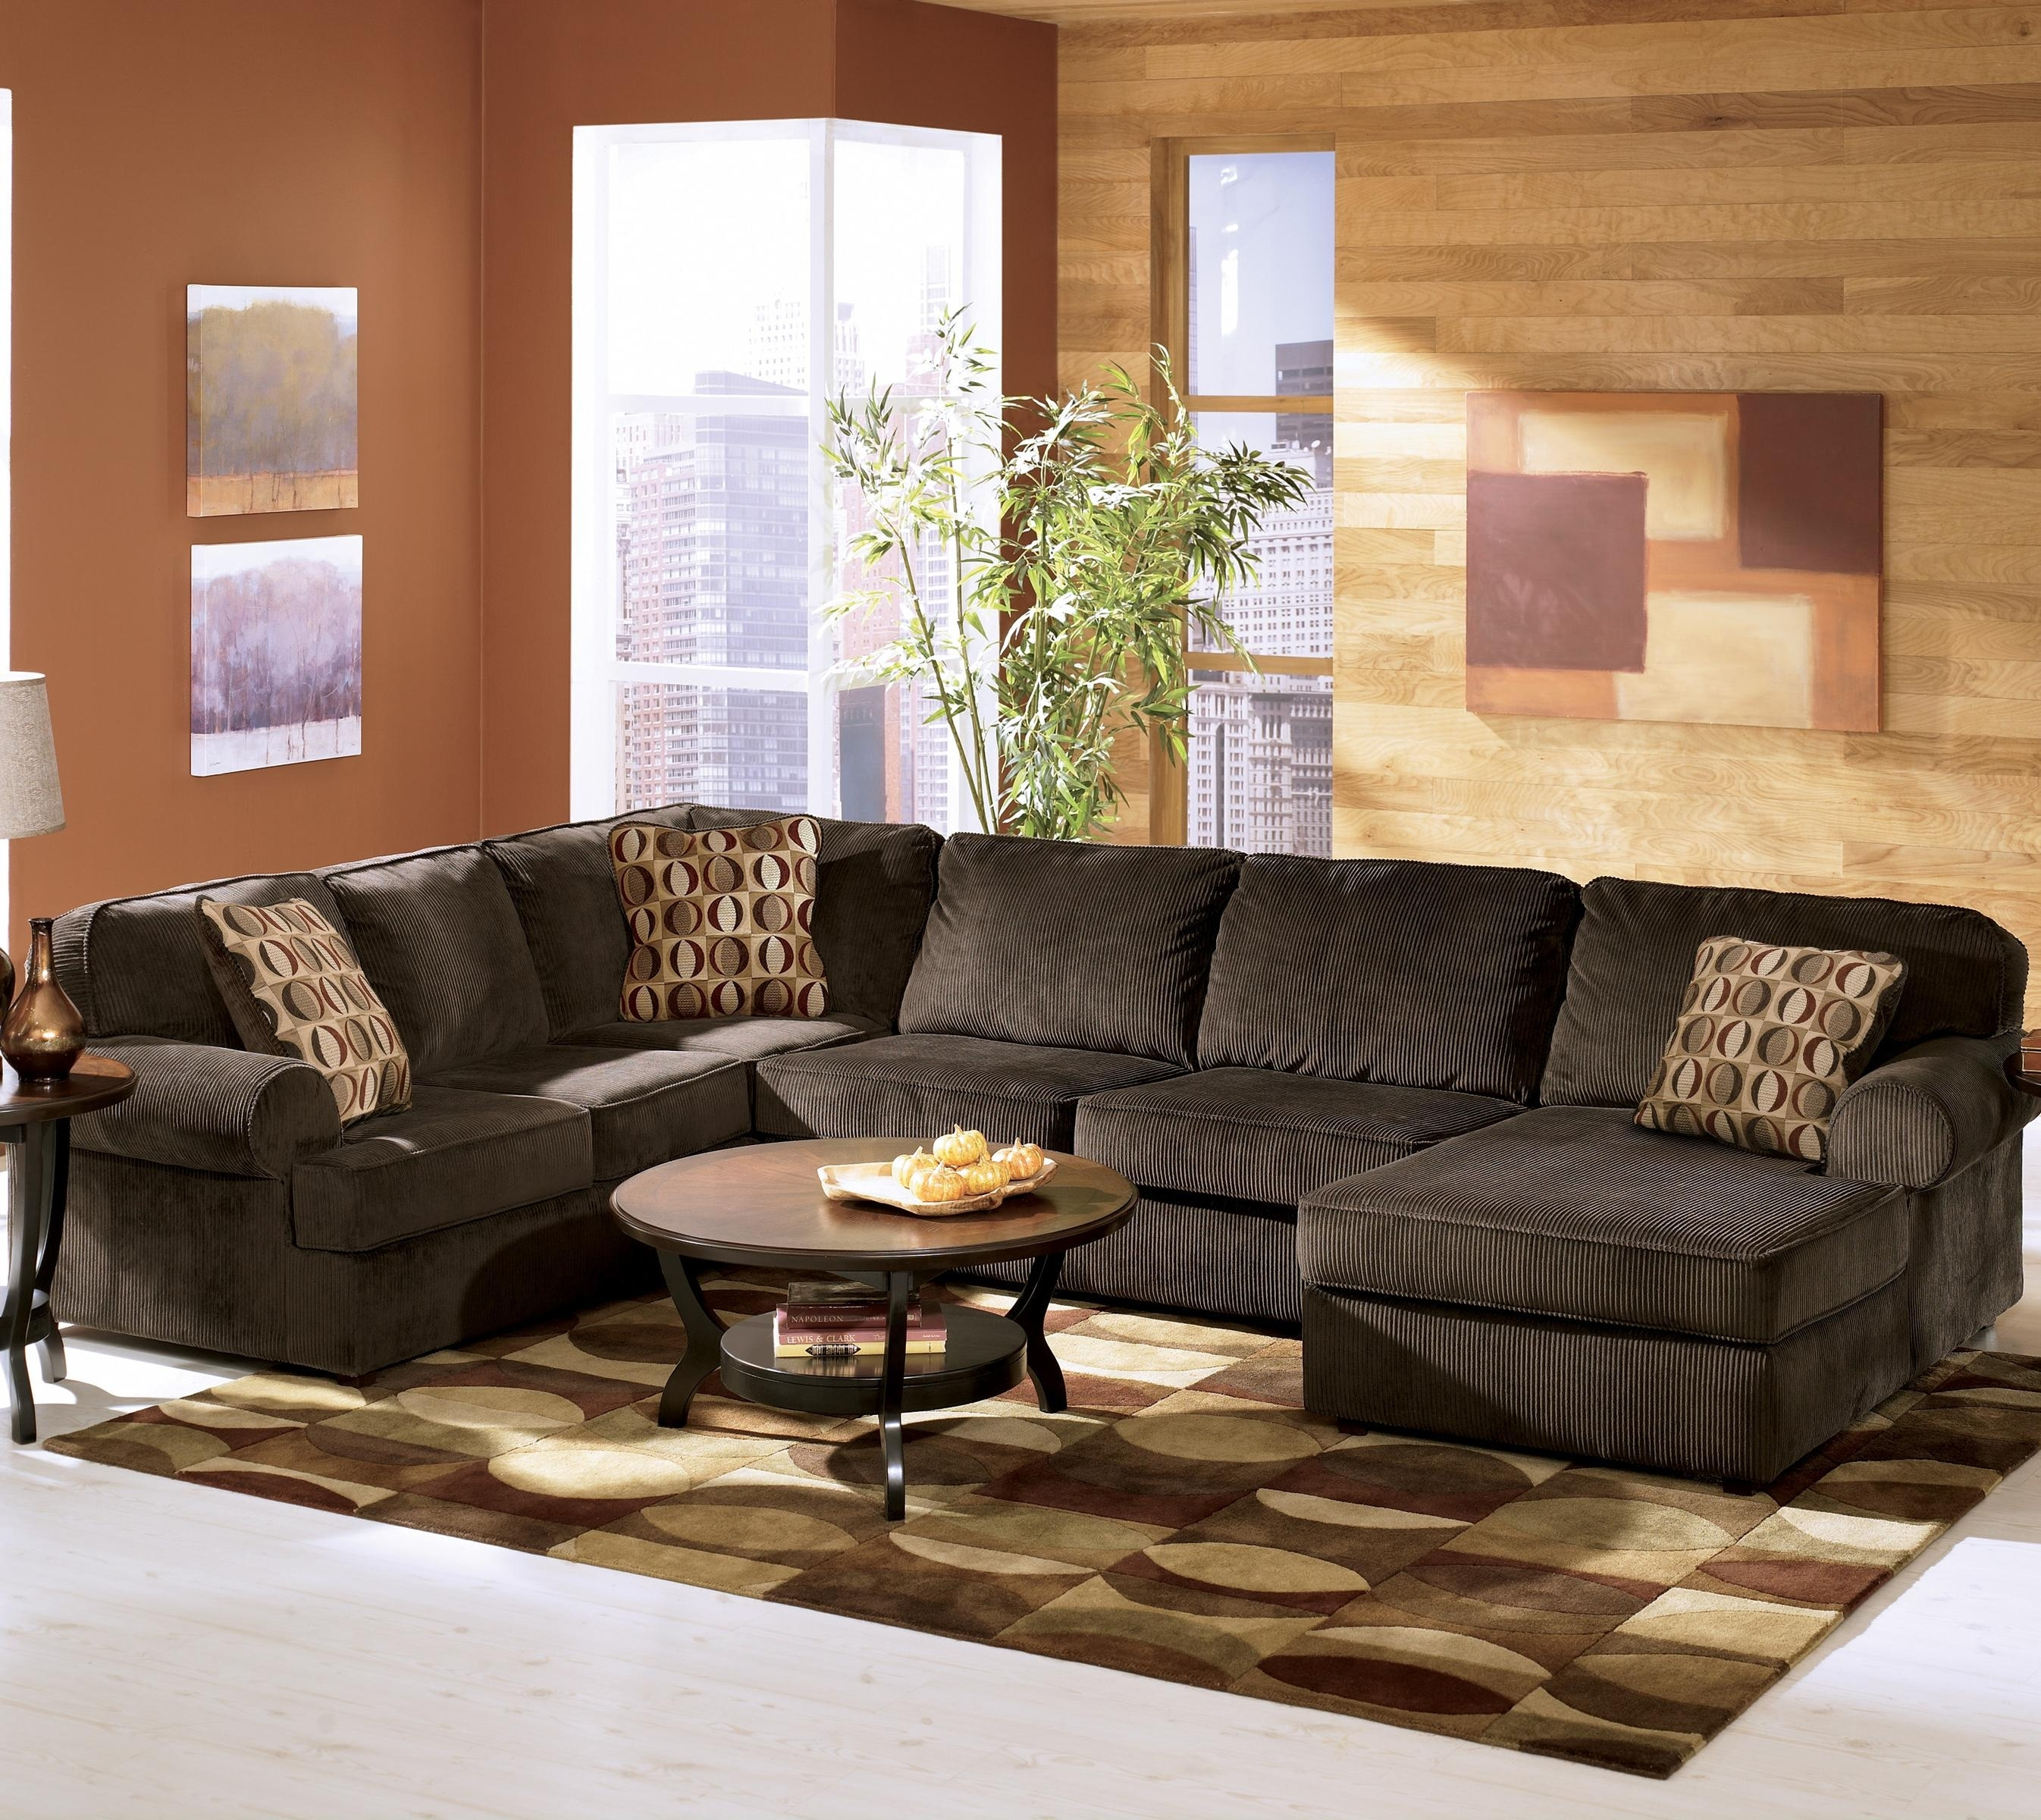 Ashley Furniture Vista - Chocolate Casual 3-Piece Sectional With with regard to Lucy Grey 2 Piece Sleeper Sectionals With Laf Chaise (Image 8 of 30)